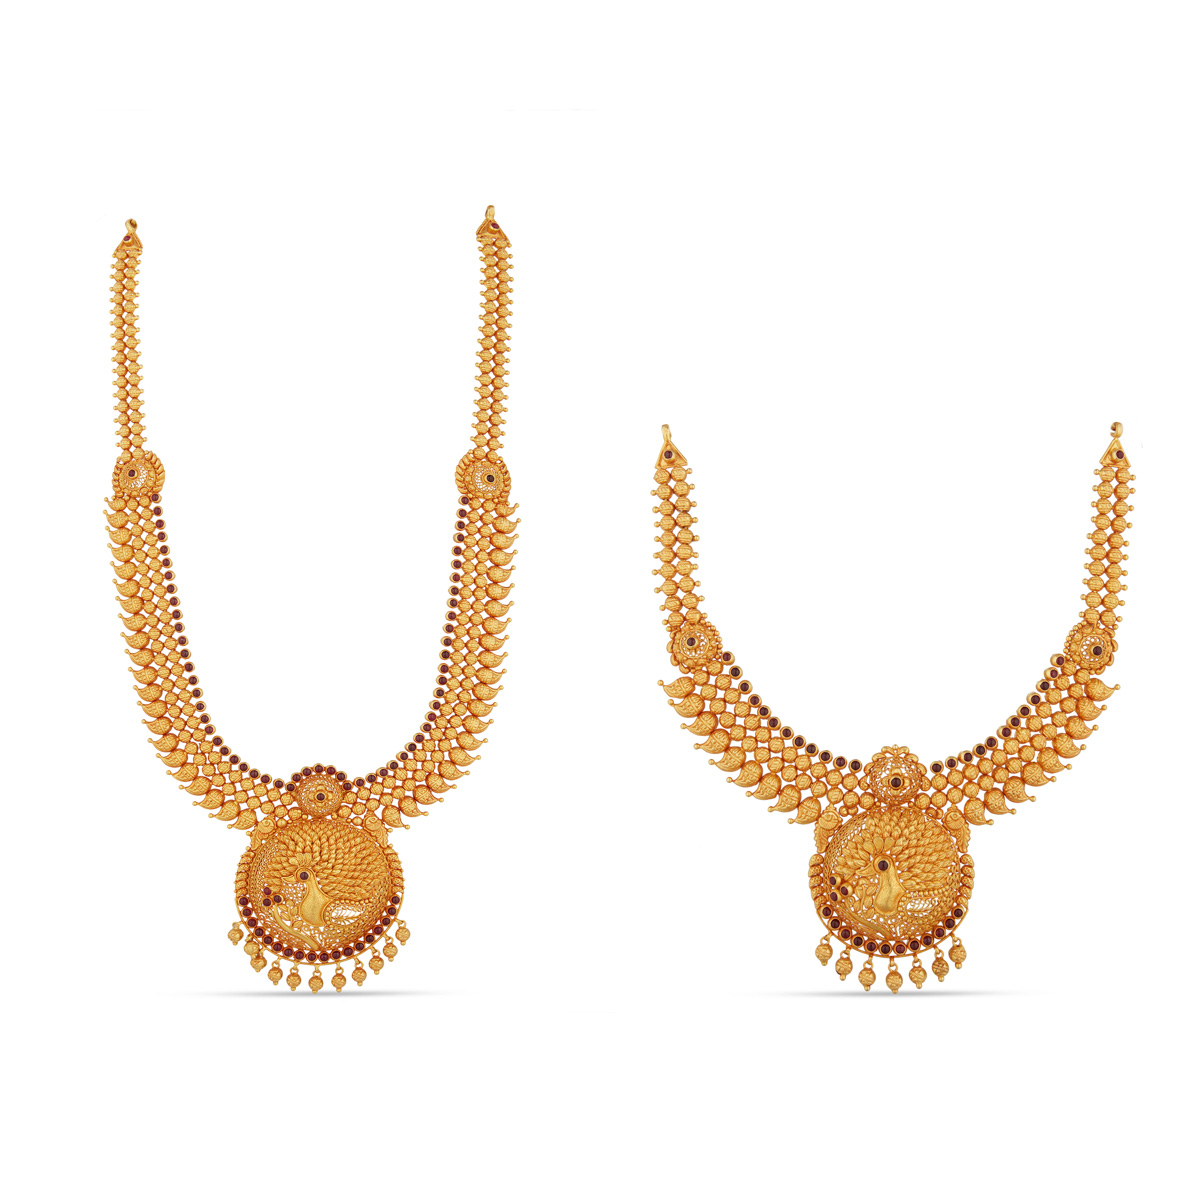 The Kalka  Bridal set